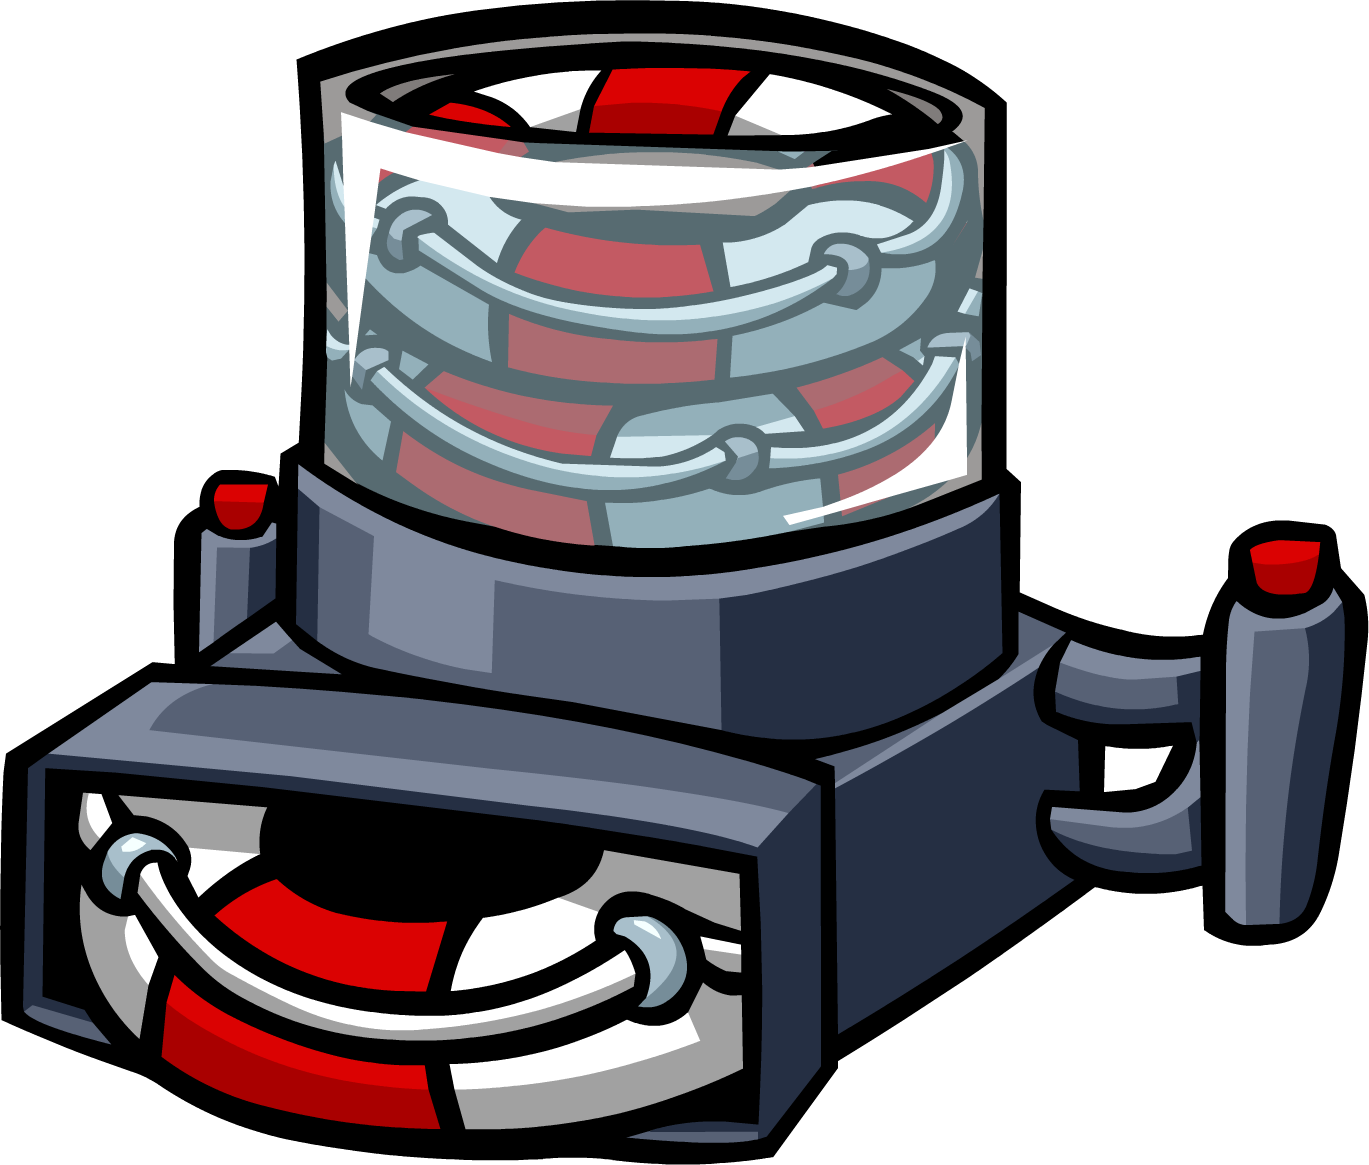 Marbles clipart shooter. Life preserver club penguin